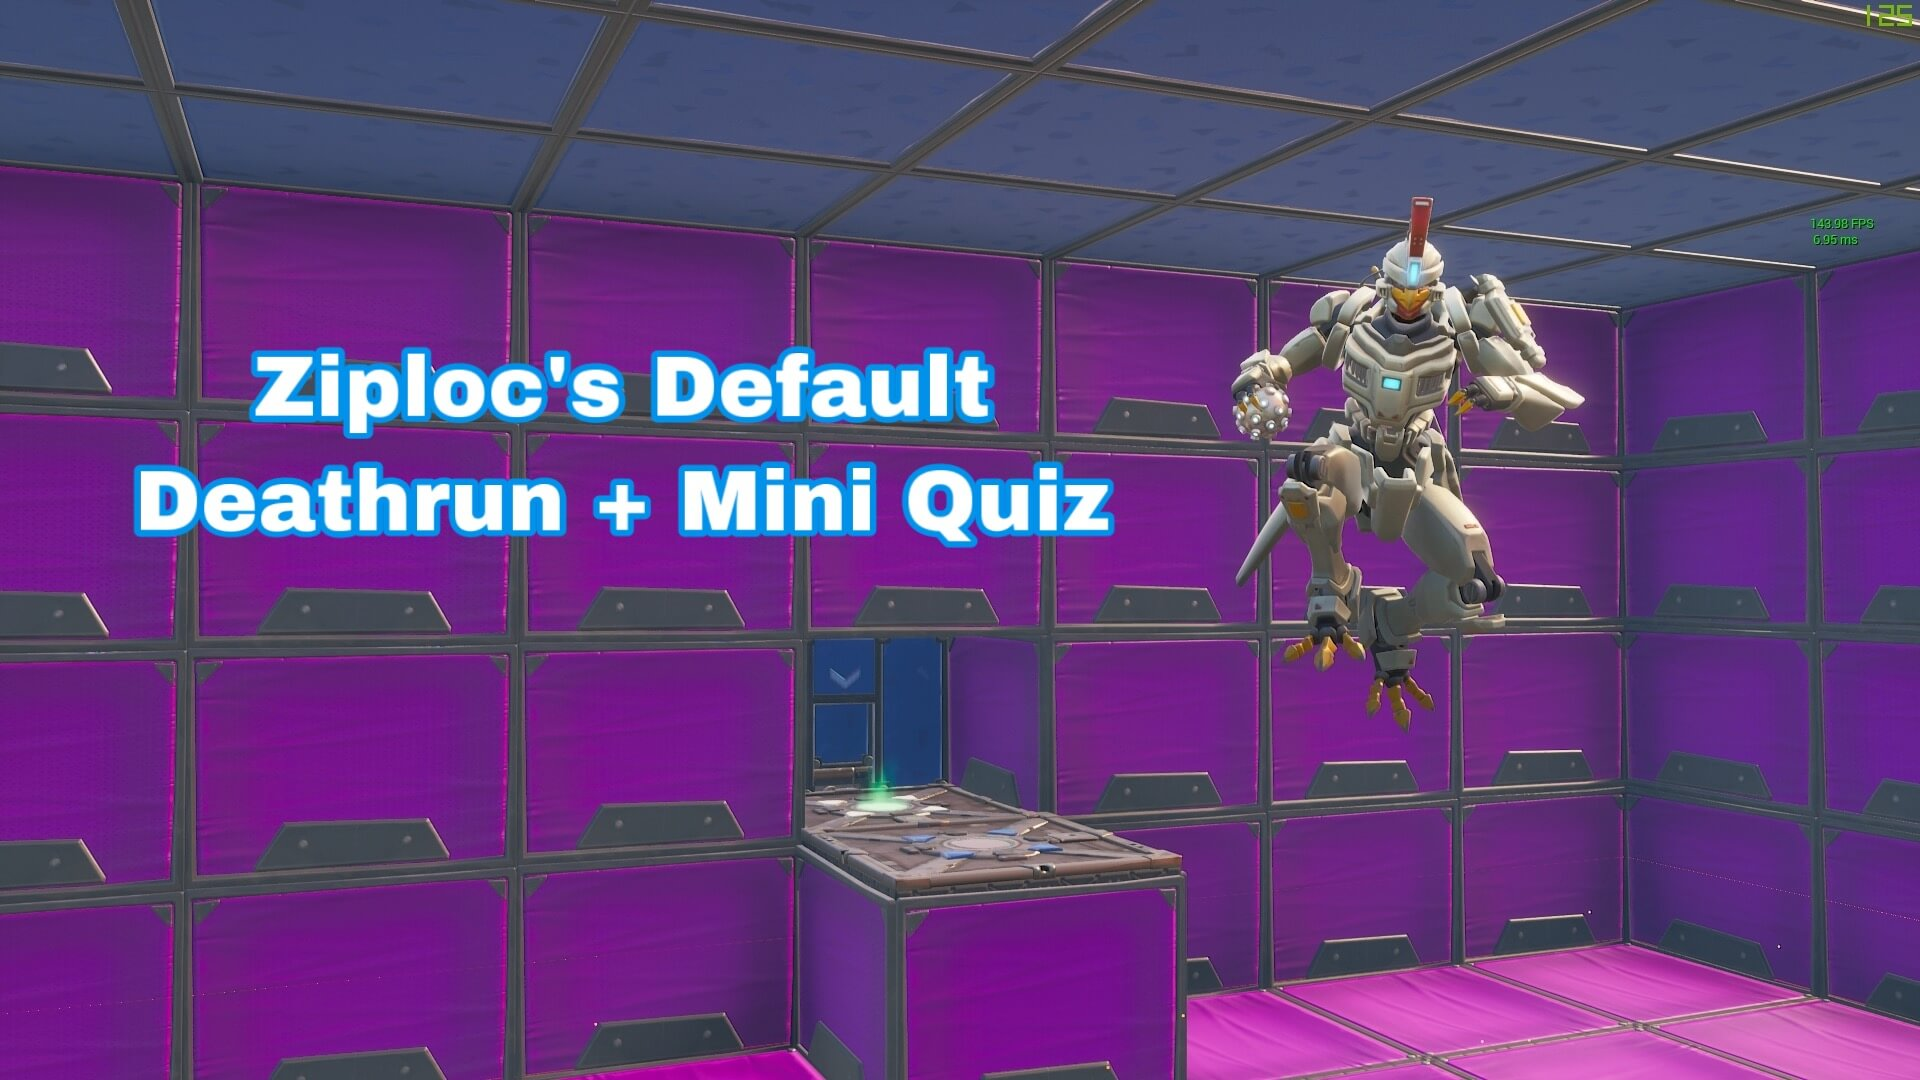 ZIPLOC'S DEFAULT DEATHRUN + MINI QUIZ